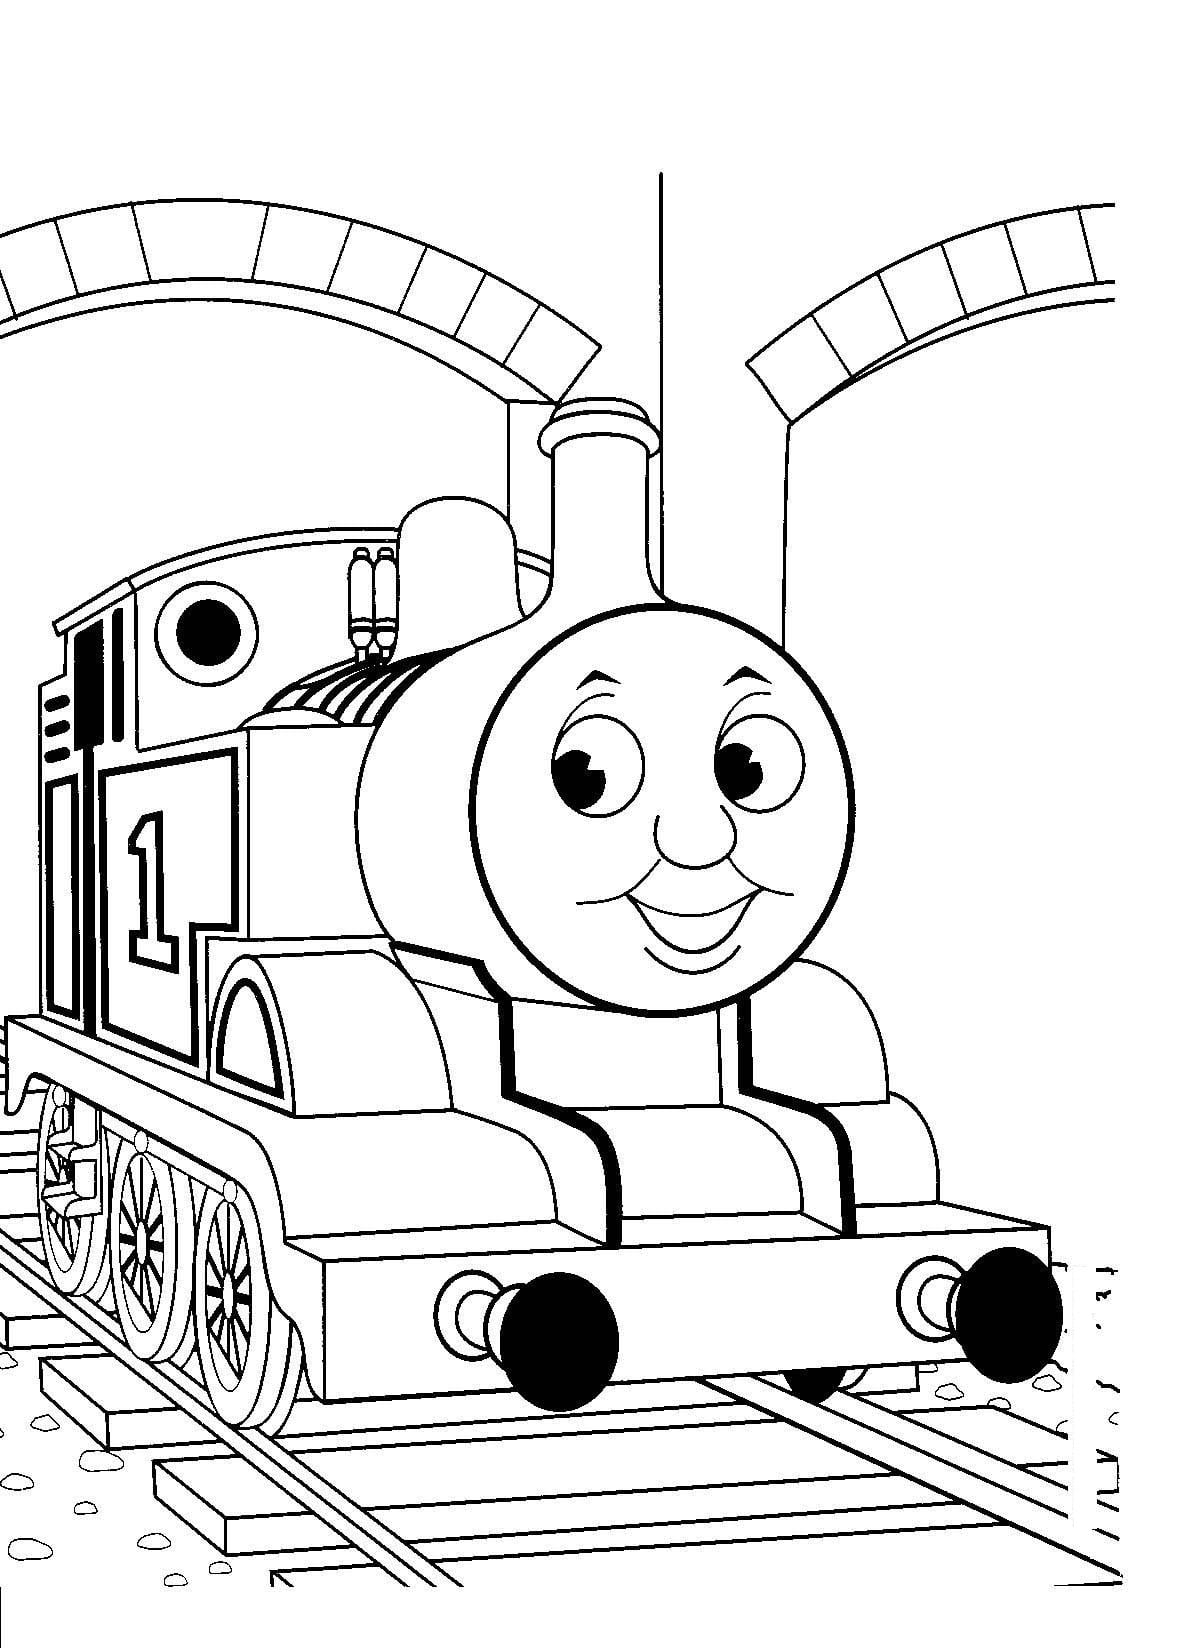 Free Printable Thomas The Train Coloring Pages To